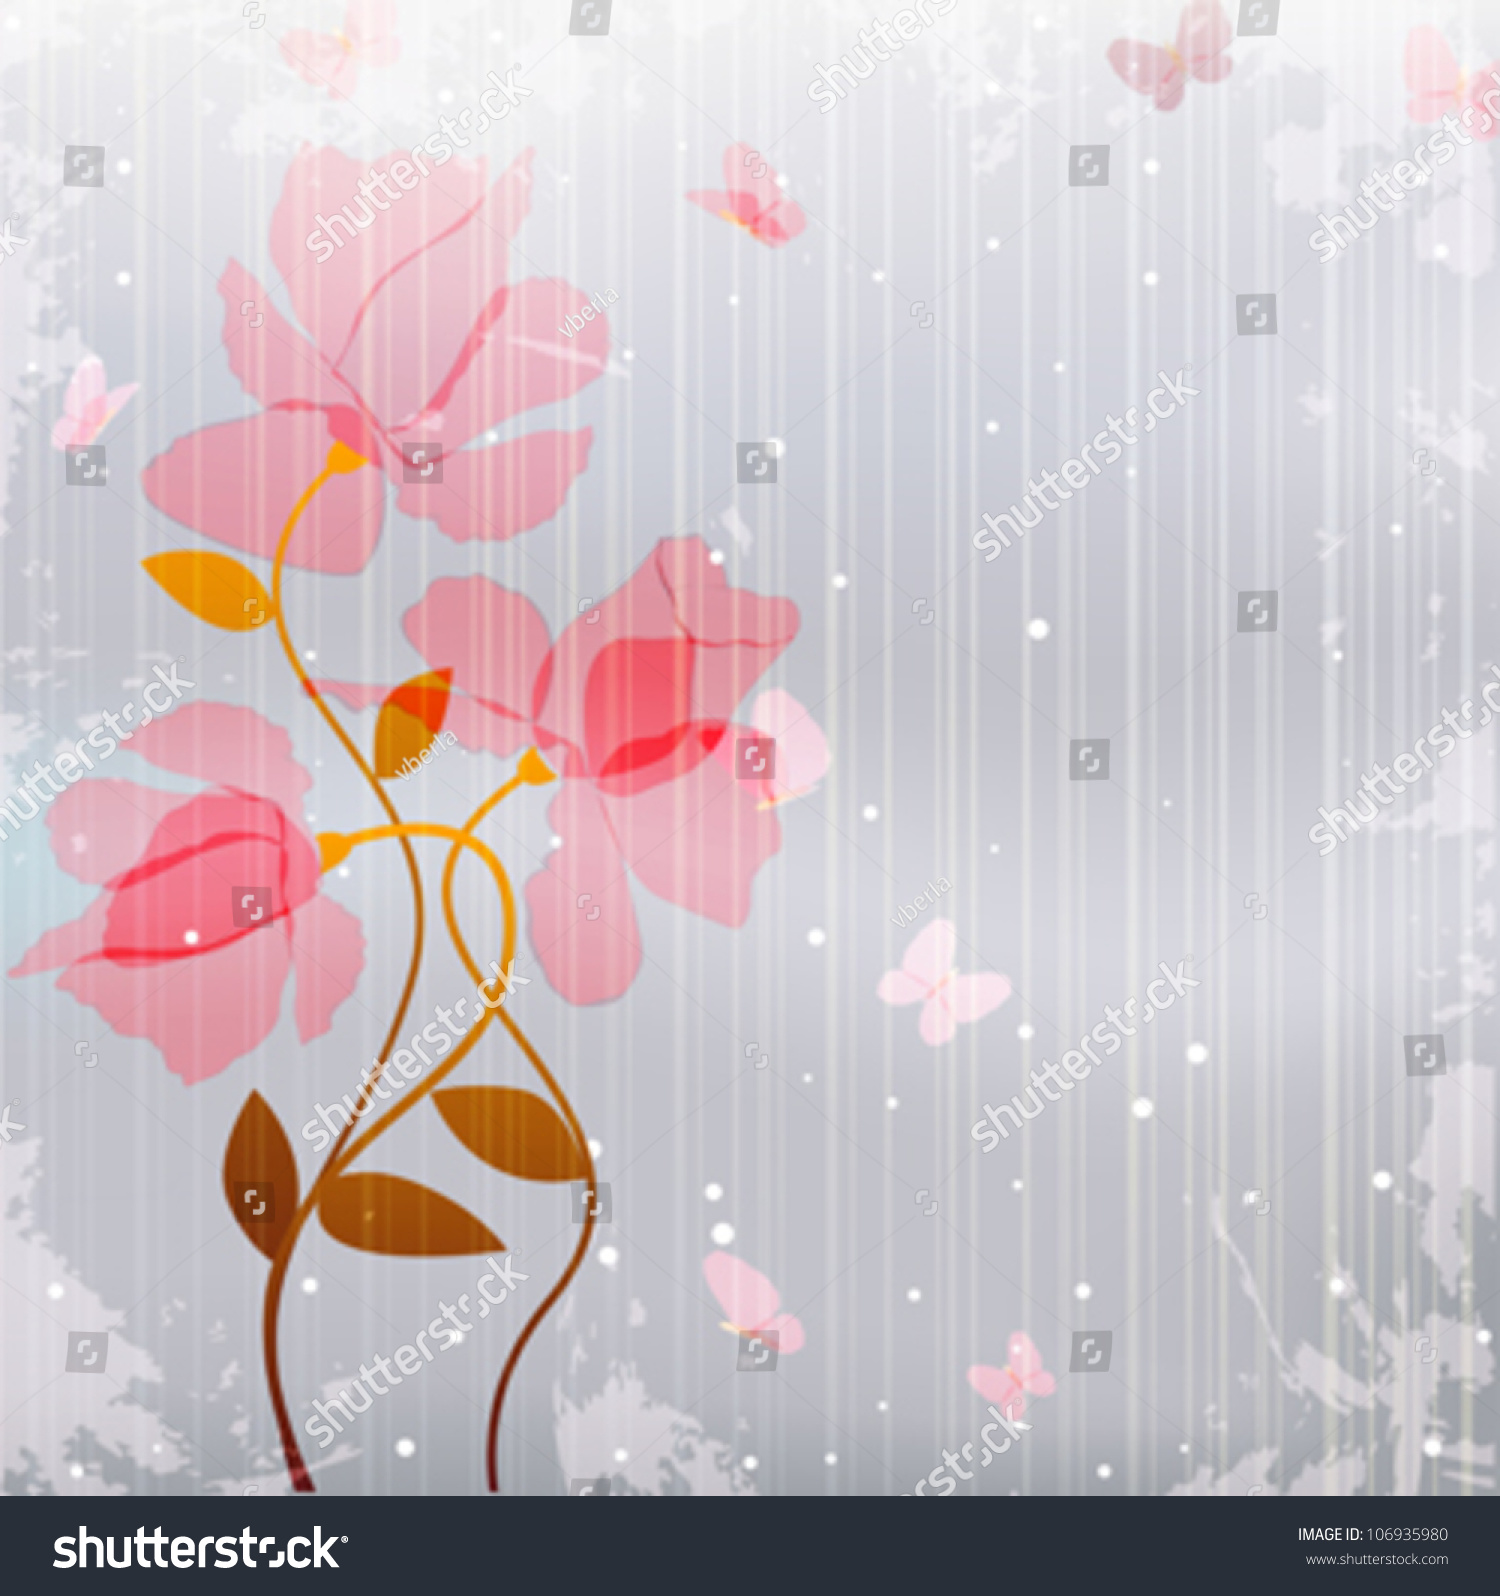 Background image transparency - Vintage Card As Transparency Pink Flowers With Butterfly On Abstract Gray Grunge Background